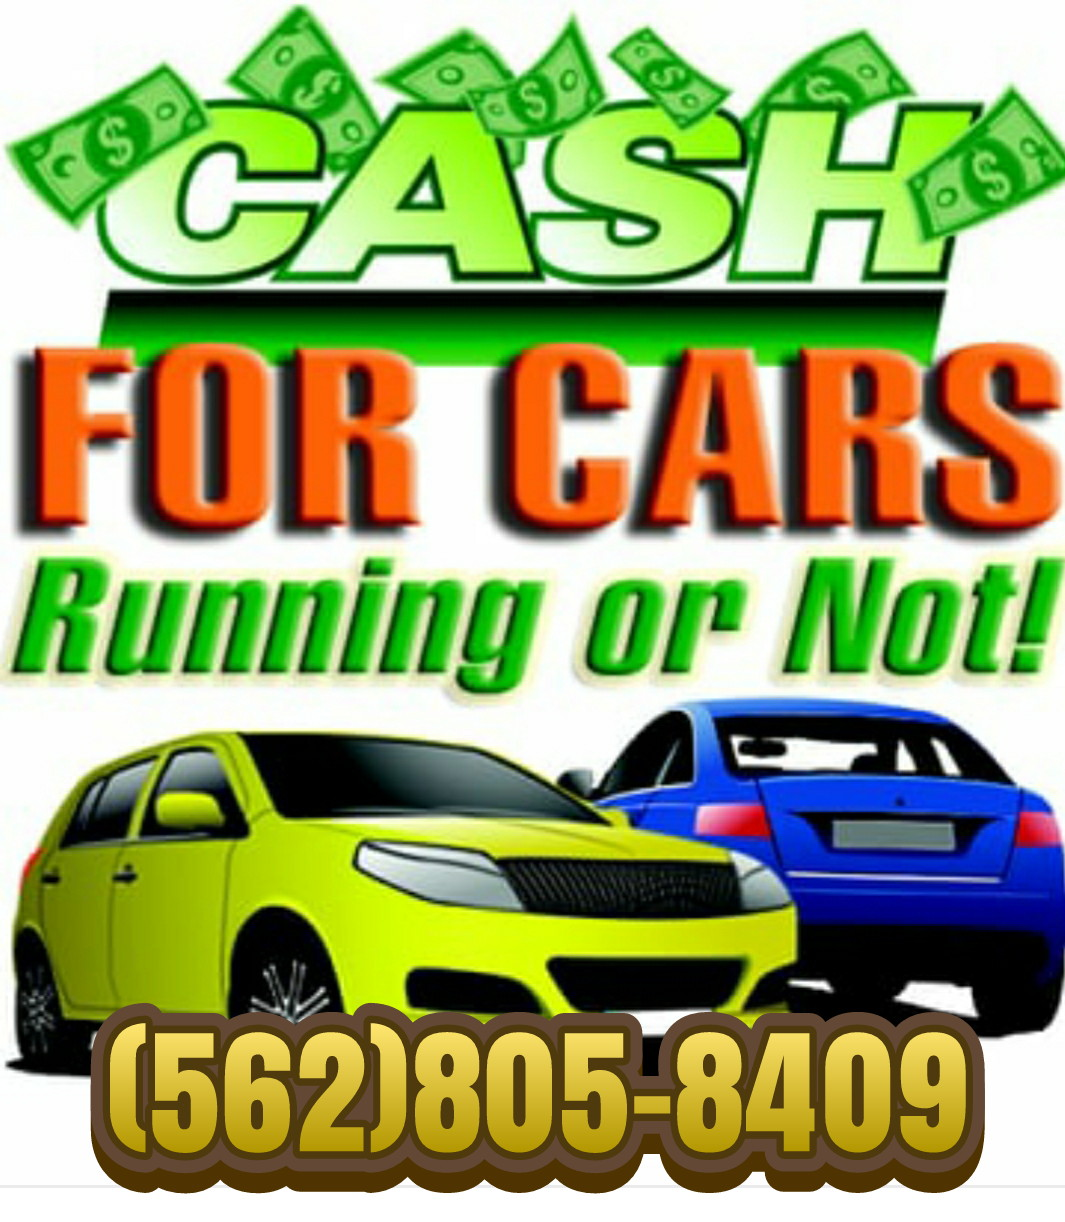 CASH FOR CARS ASAP$$